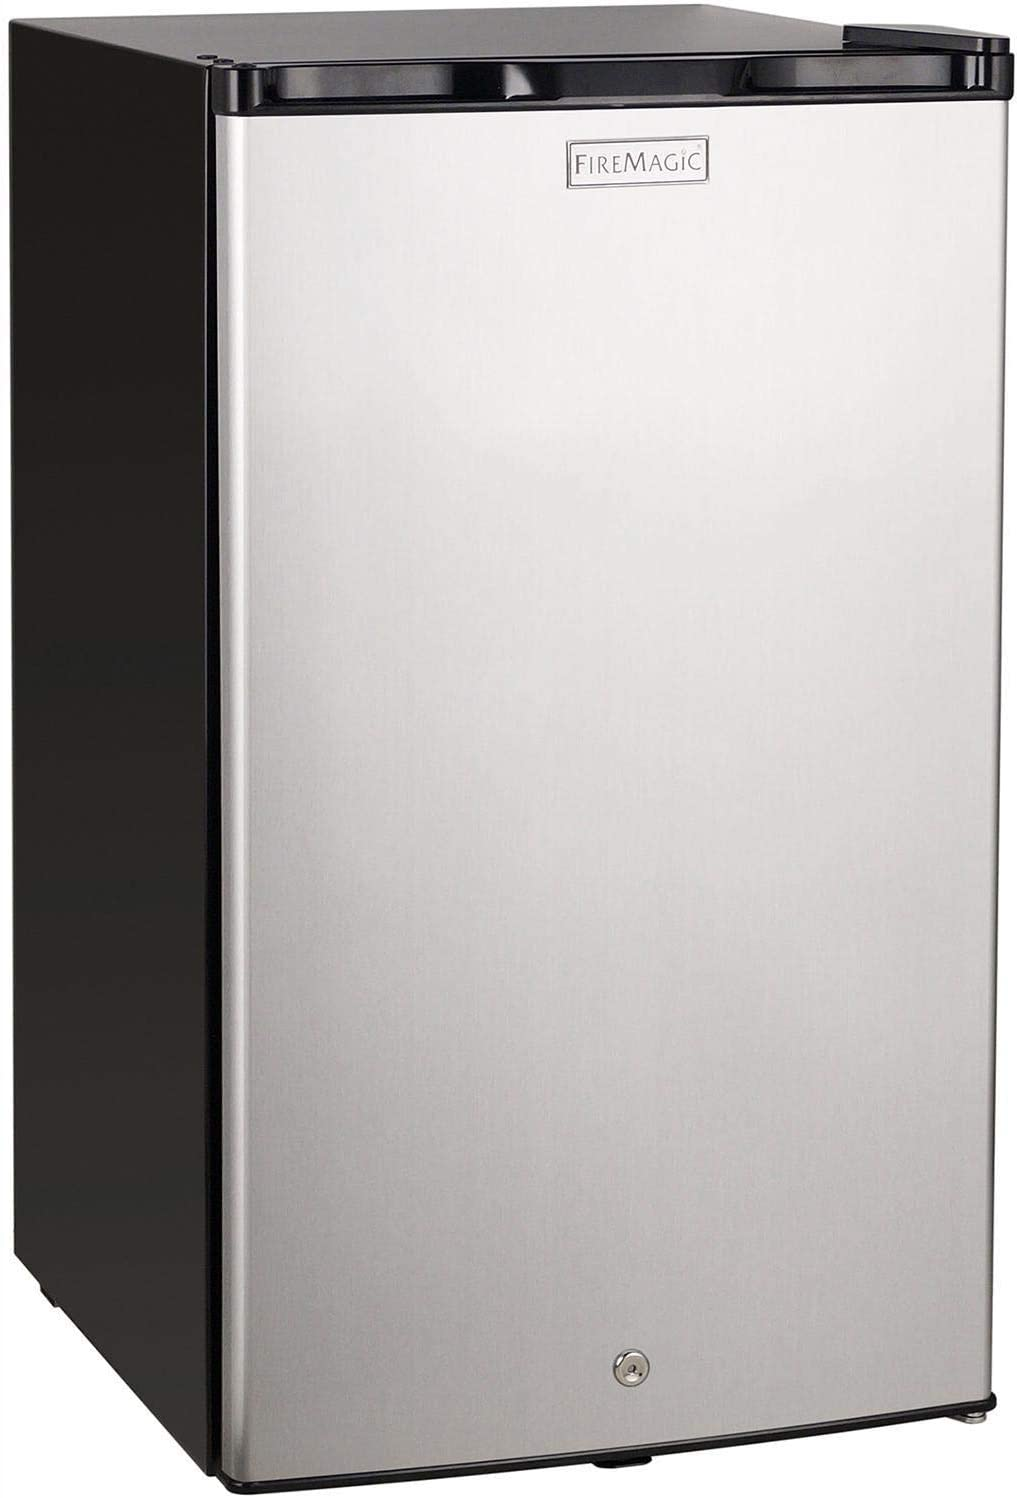 Fire Magic 20-Inch 4.0 Cu. Ft. Compact Refrigerator - Stainless Steel Door/Black Cabinet - 3598